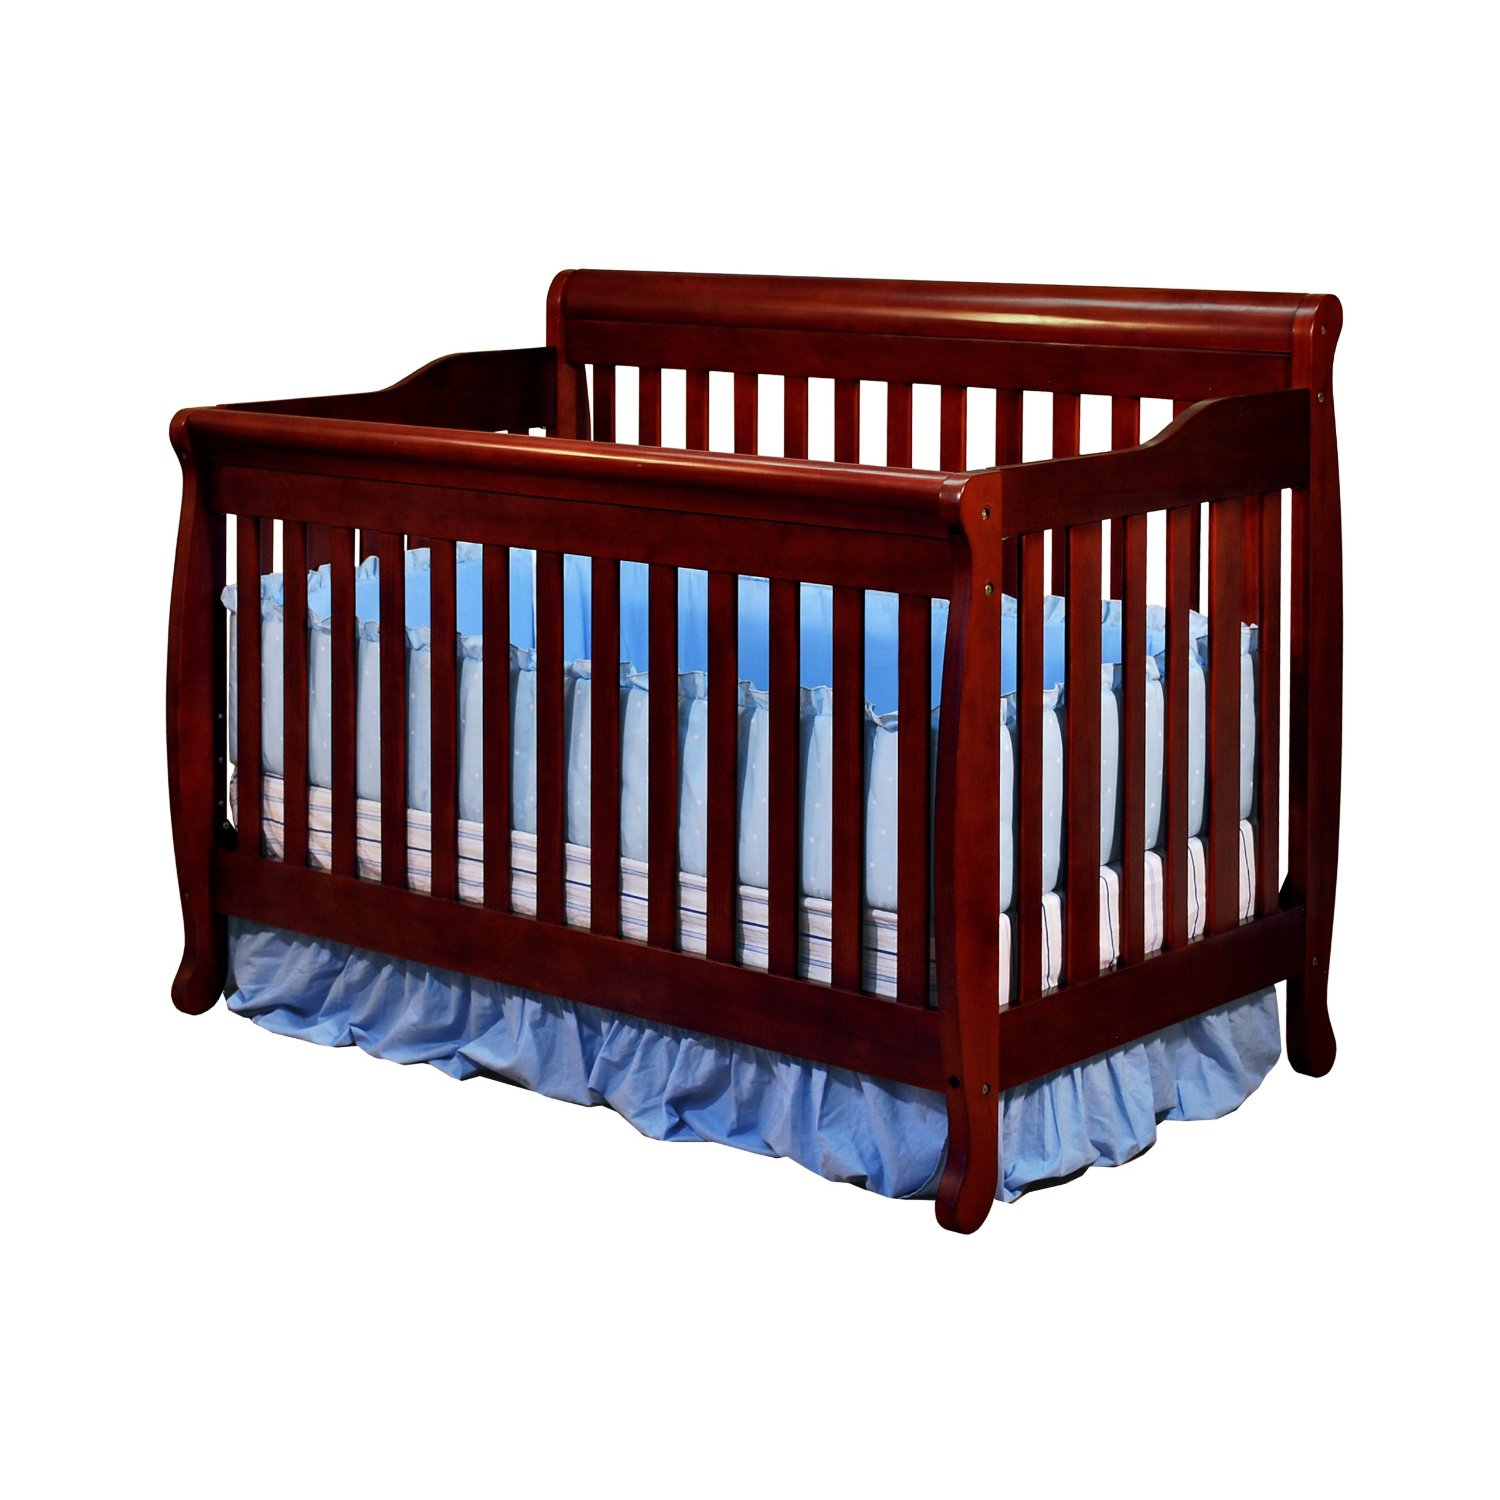 Cribs safety requirements bed mattress sale for Baby furniture